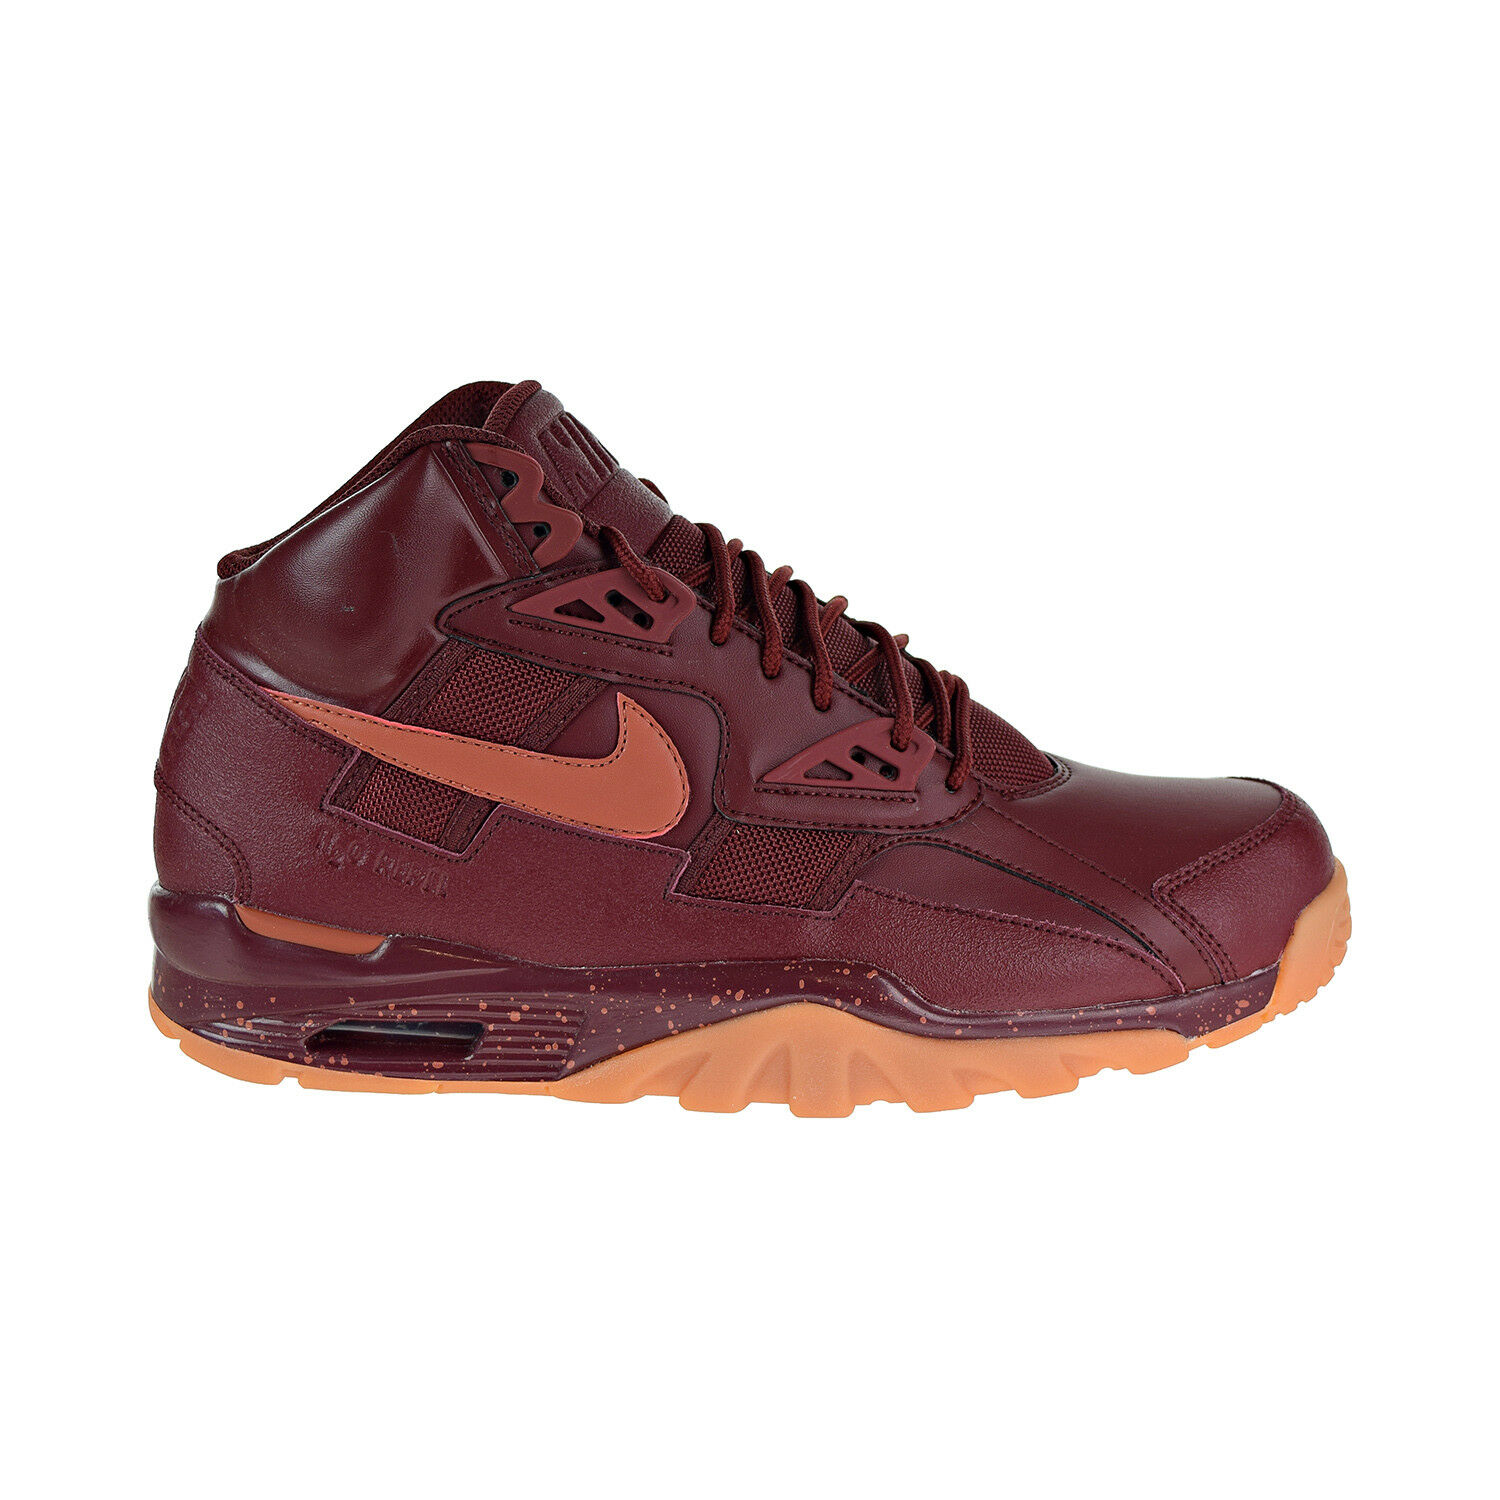 Nike Air Traniner SC Winter Men's Shoes Dark Team Red/Dusty Peach AA1120-600